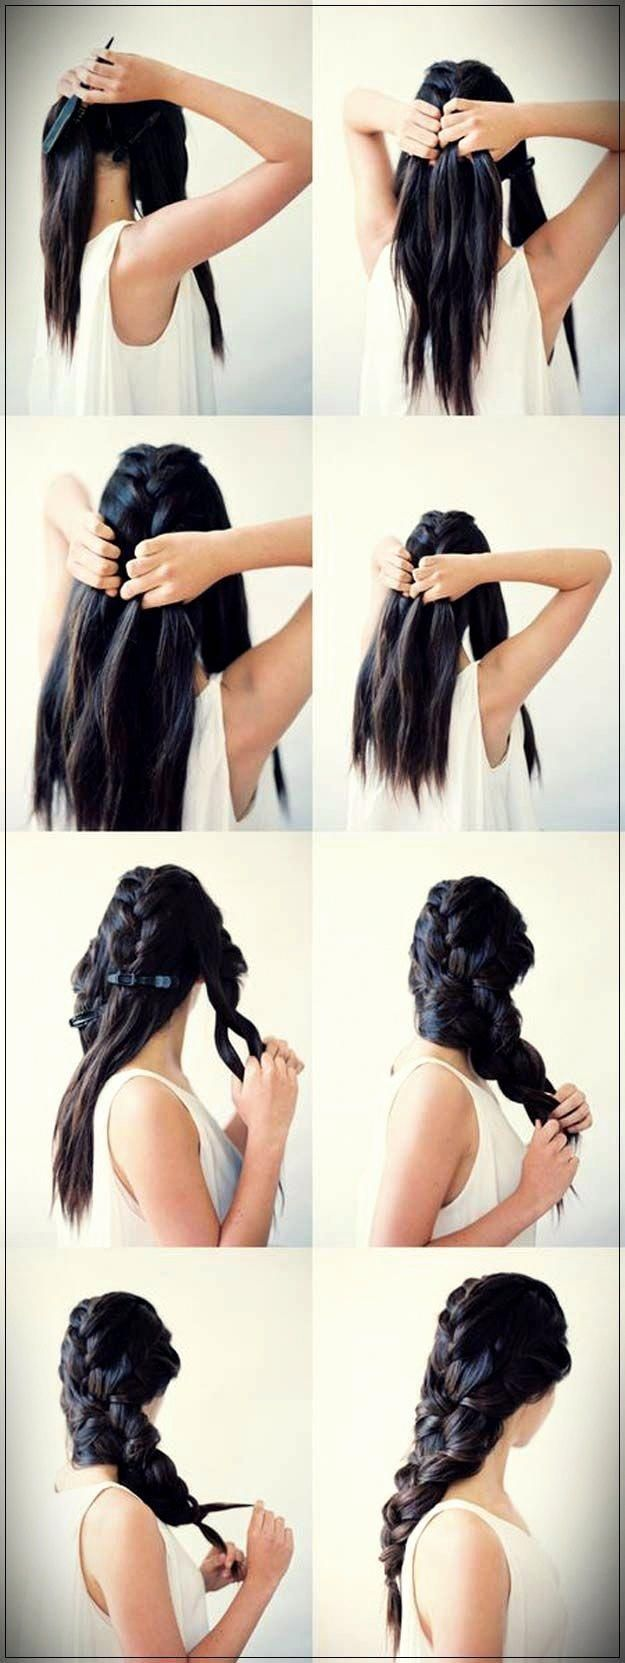 Easy Hairstyles 2019 step by step  #DIYhairstyles #easyhairstyles #howtomakehairathome